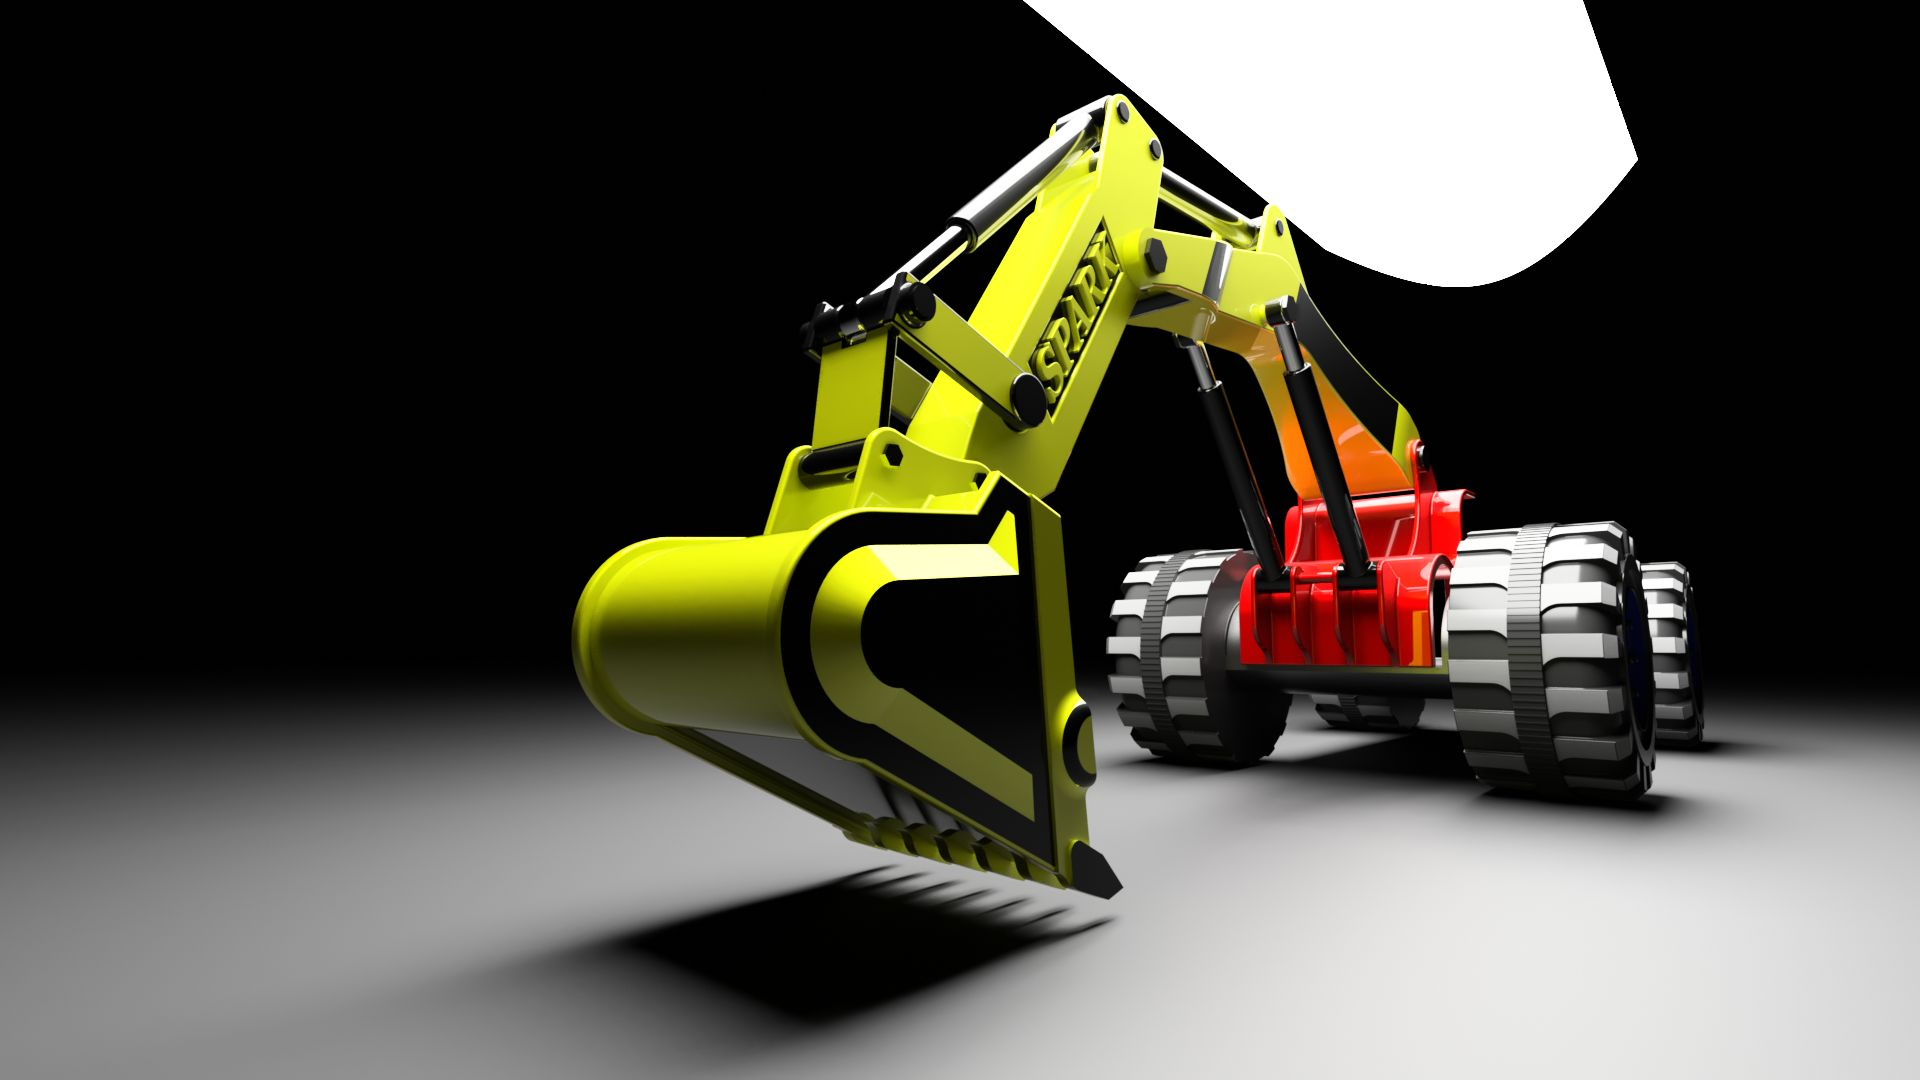 Excavator-vieo-2017-dec-27-07-37-14am-000-customizedview35245030399-png-3500-3500